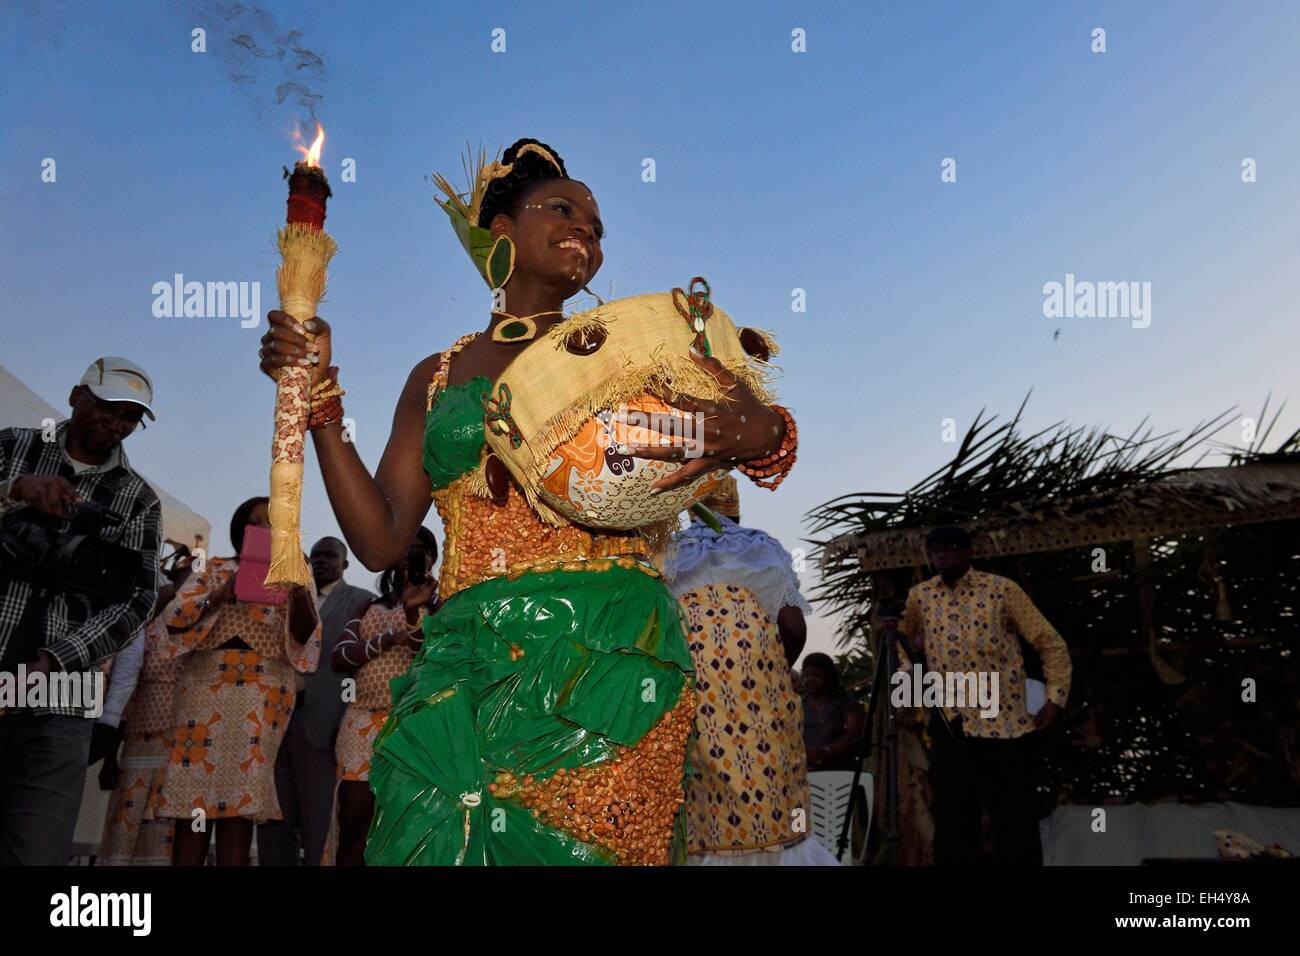 Gabon, Libreville, customary wedding, the bride with traditional symbols - Stock Image